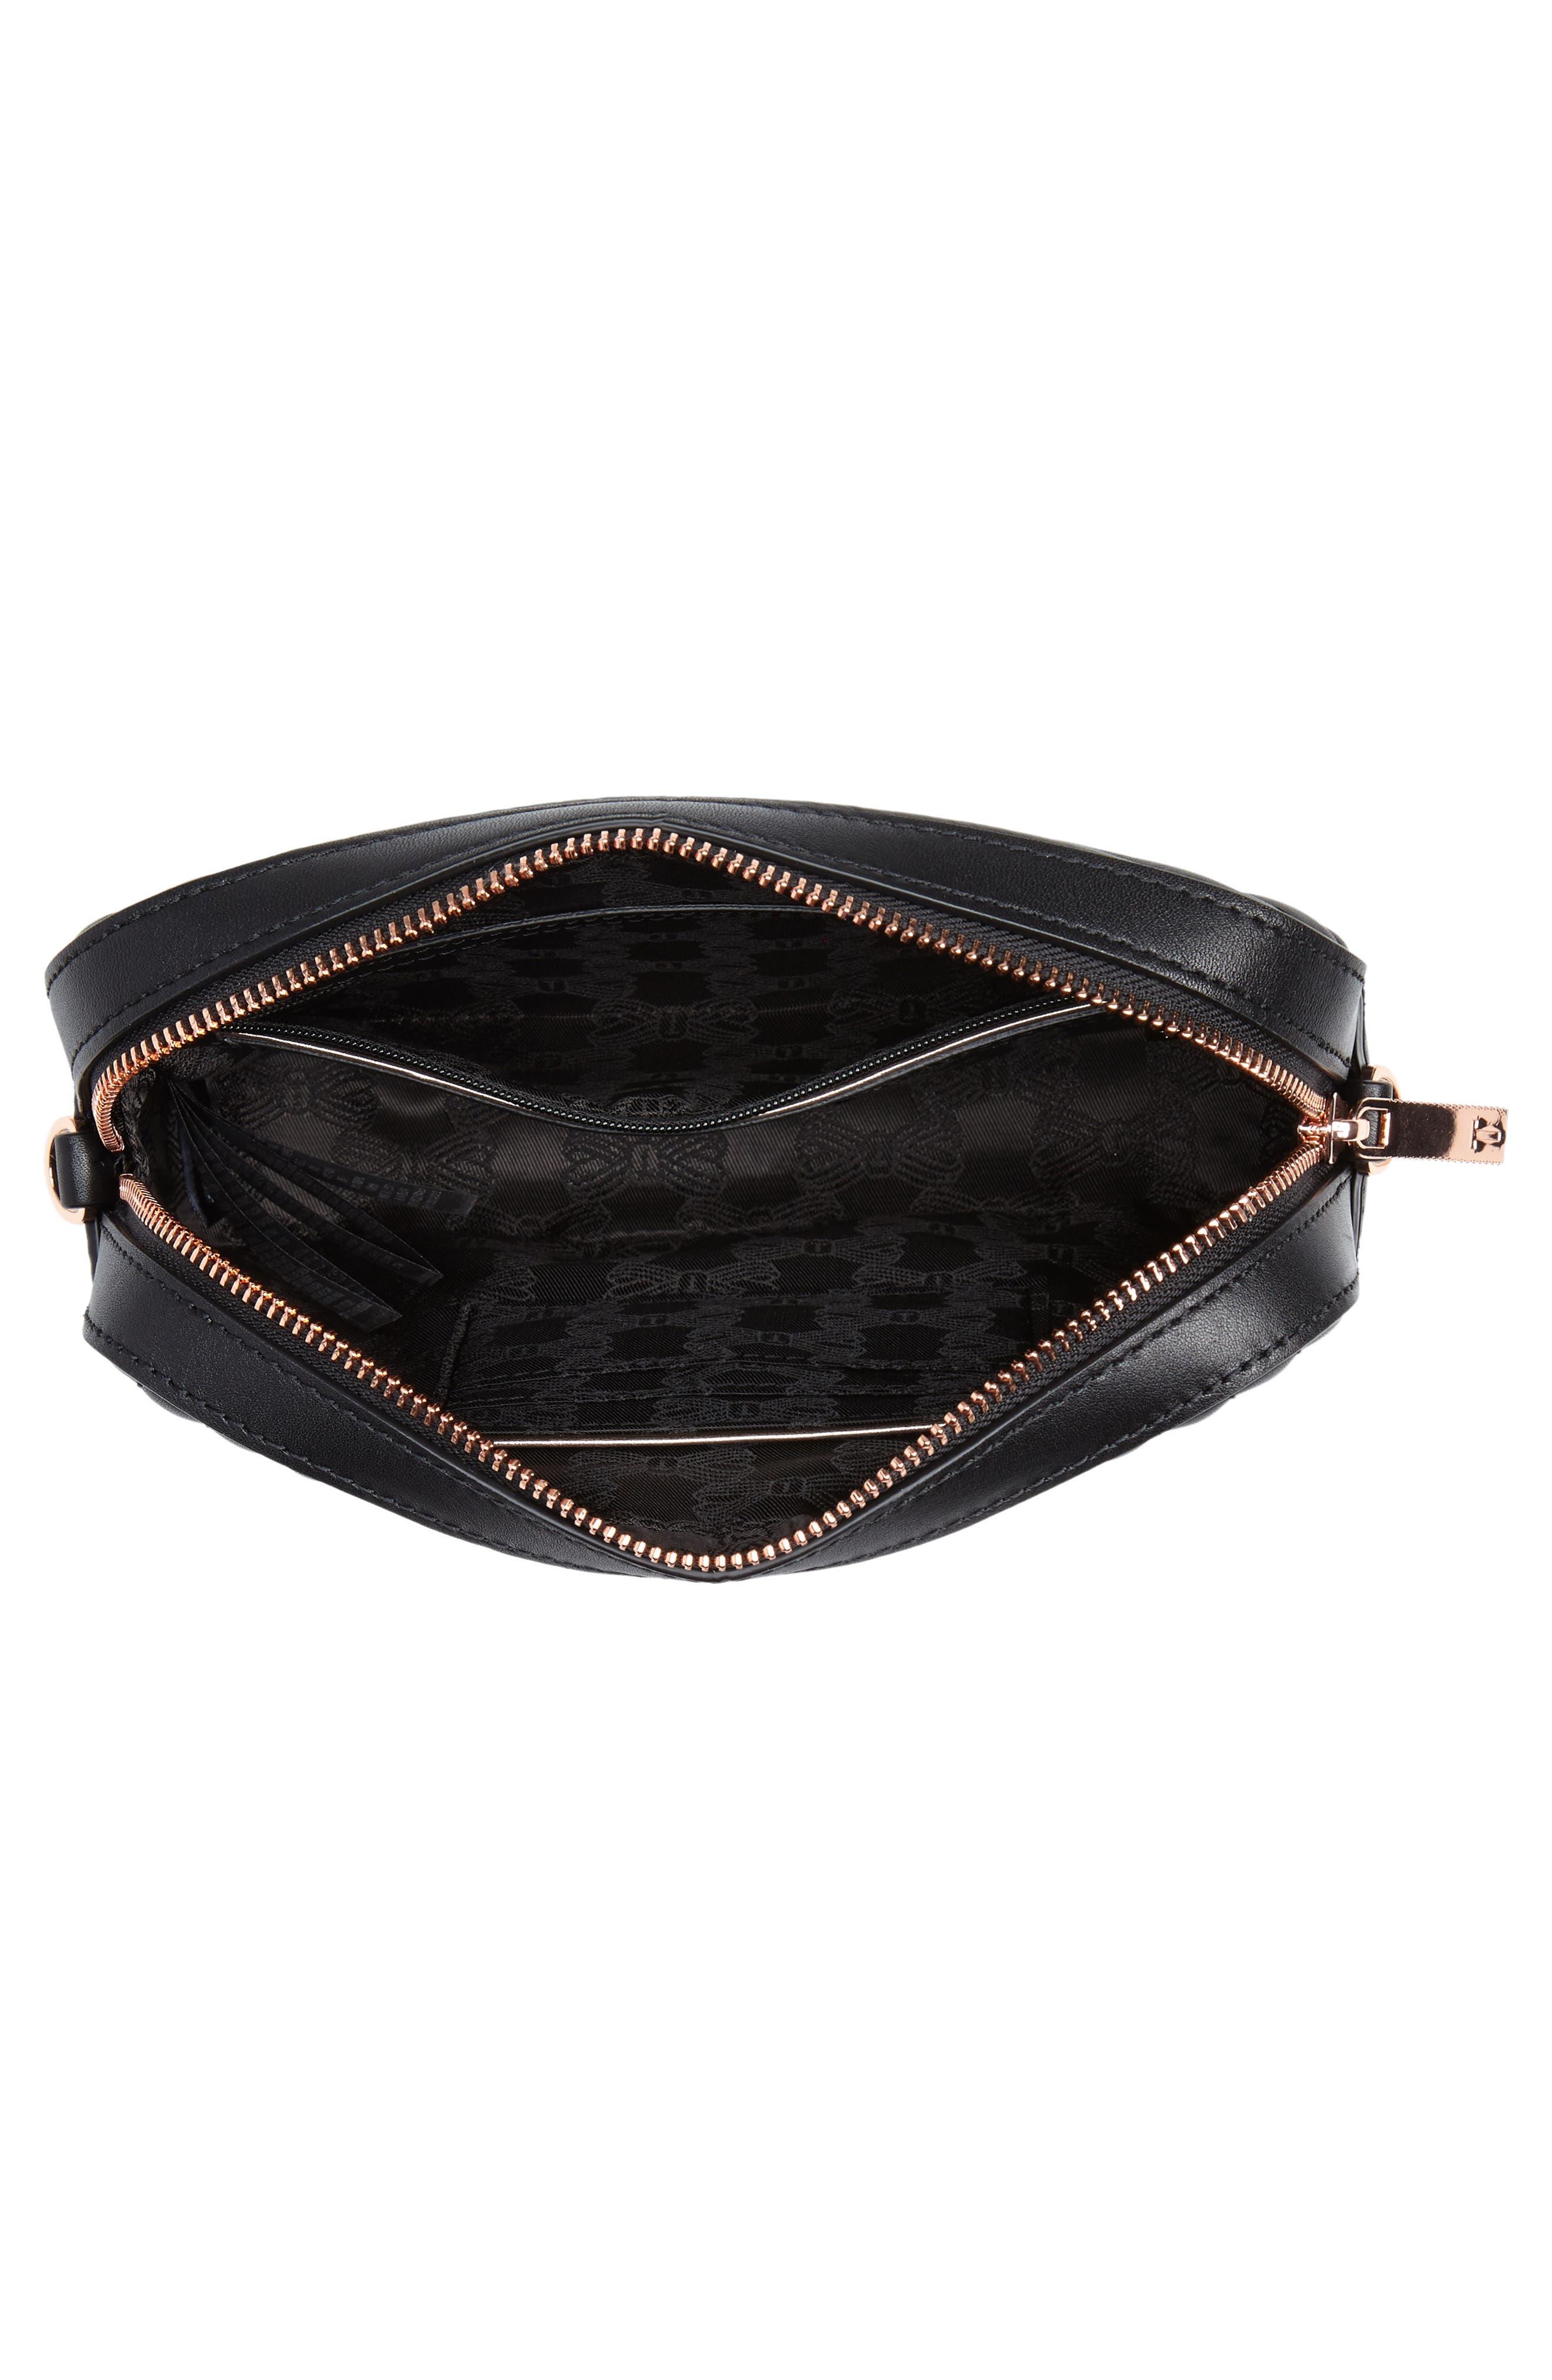 Quilted Leather Camera Bag,                             Alternate thumbnail 4, color,                             Black